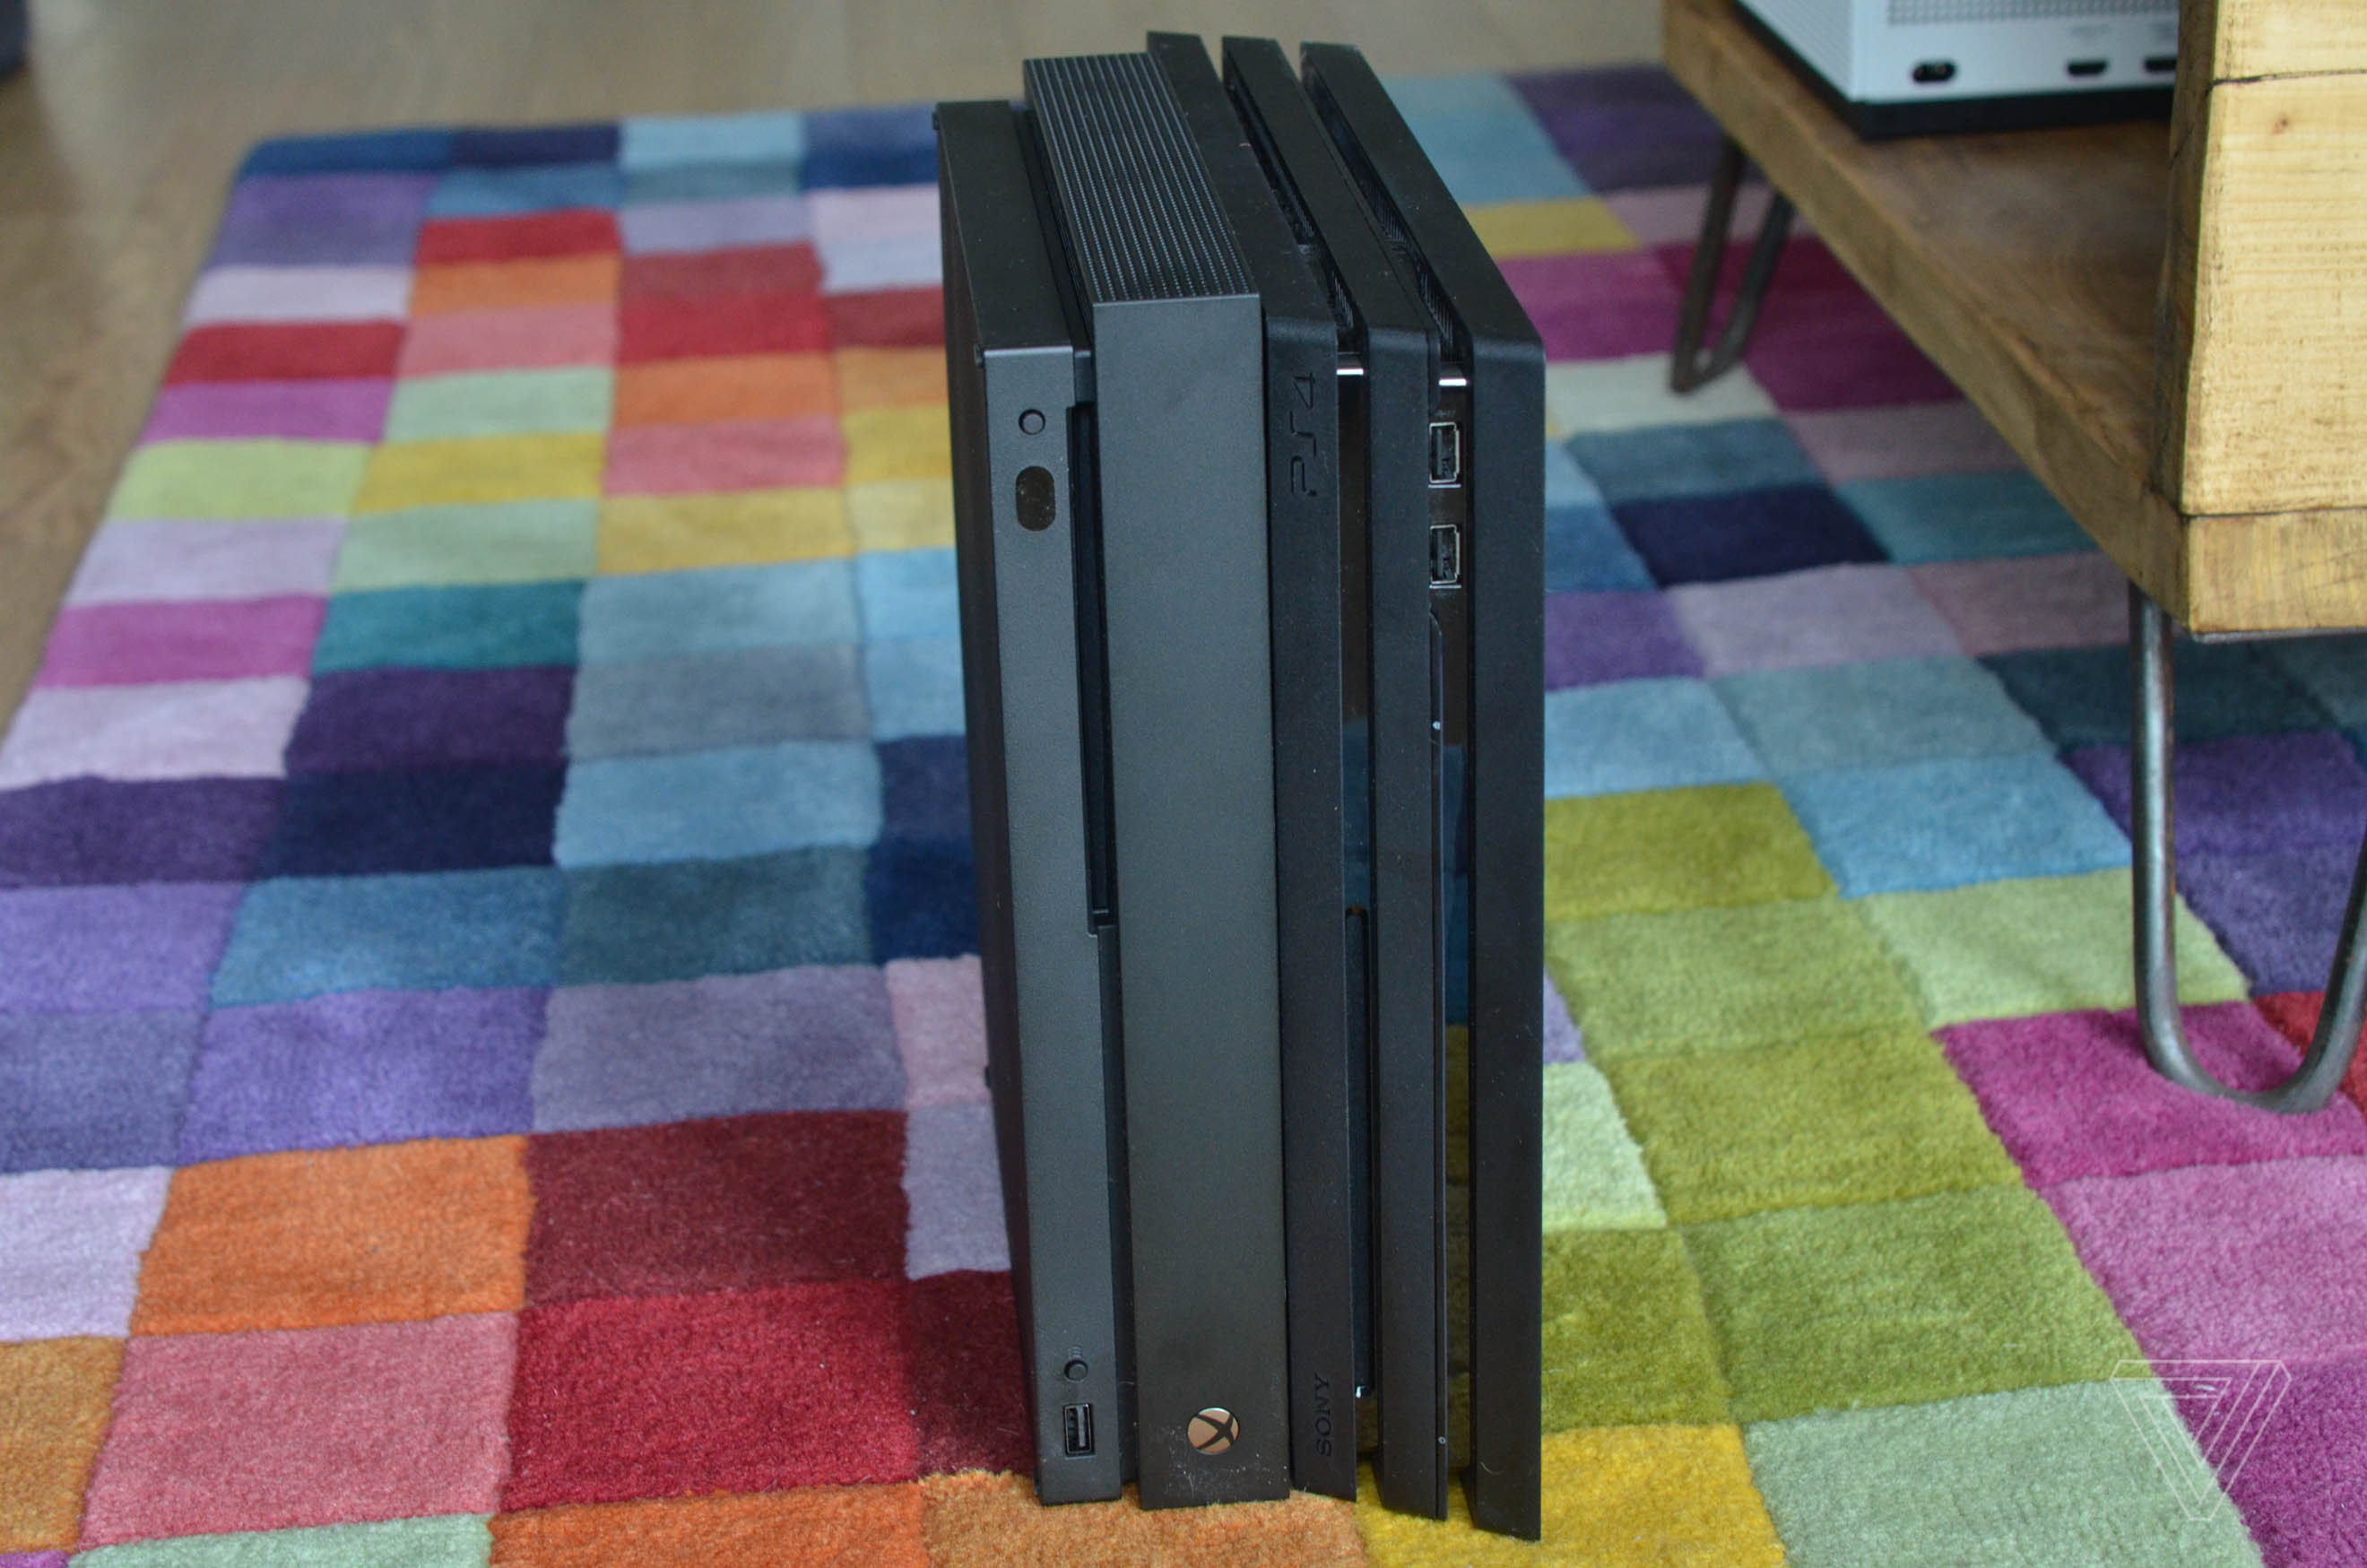 PS4 Pro vs  Xbox One X in pictures - The Verge